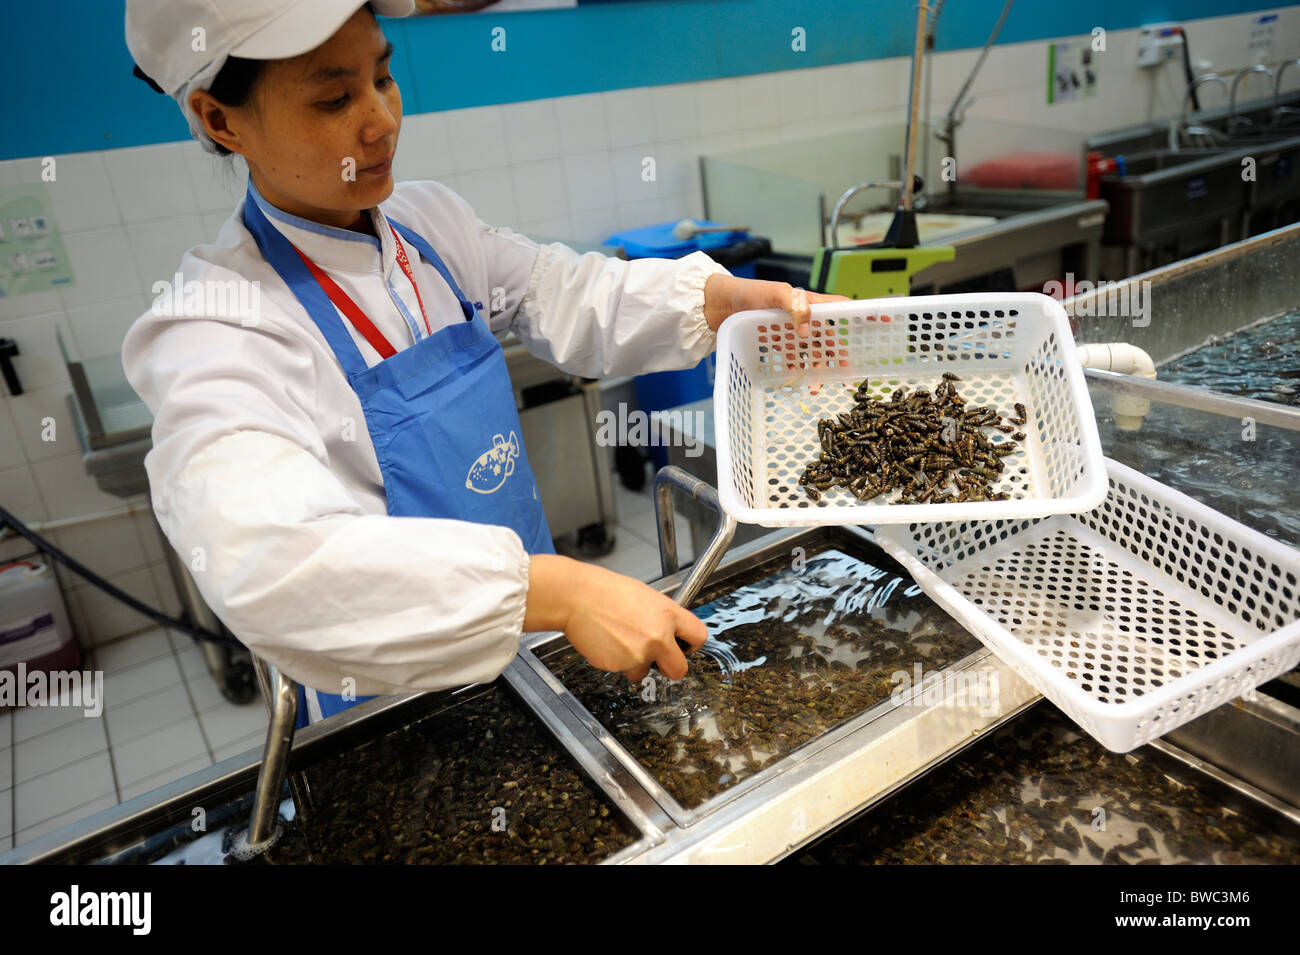 Live shells are on sale in Qingdao Tesco, Shandong province, China. 11-Nov-2010 - Stock Image